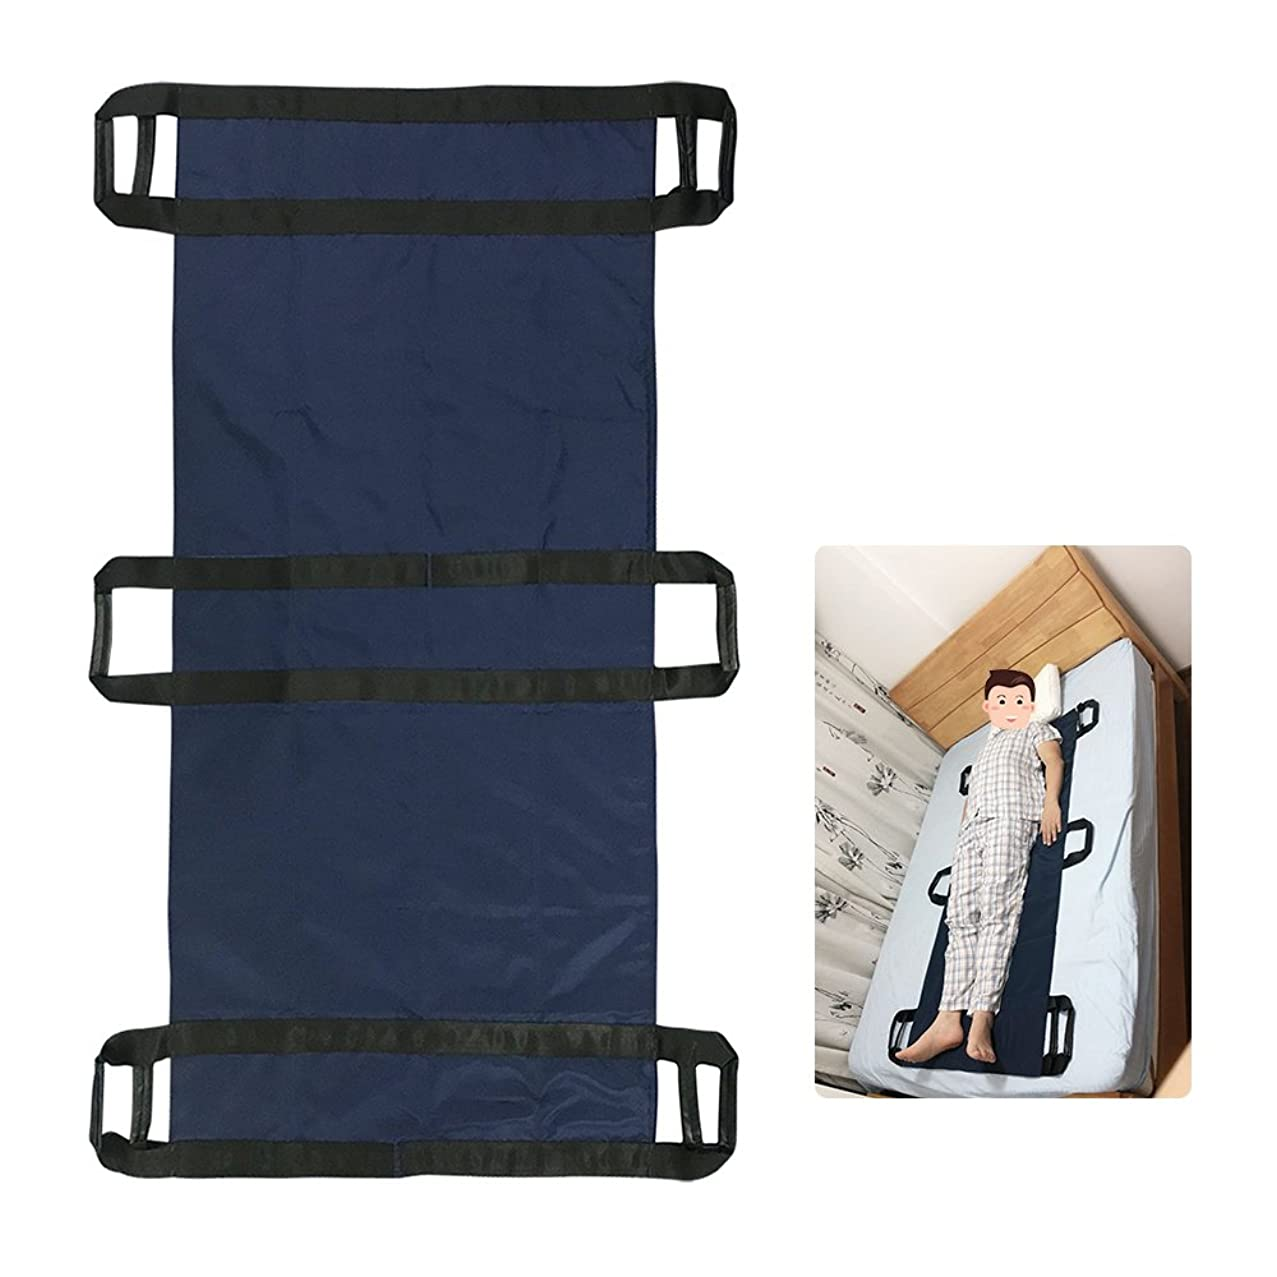 Transfer Boards Slide Belt Patient Lift Bed Assistance Devices Bariatric Hospital Bed Sheets Patient Transport Medical Lift Sling Positioning Pad (6 Handle) yjzqaaolwm746